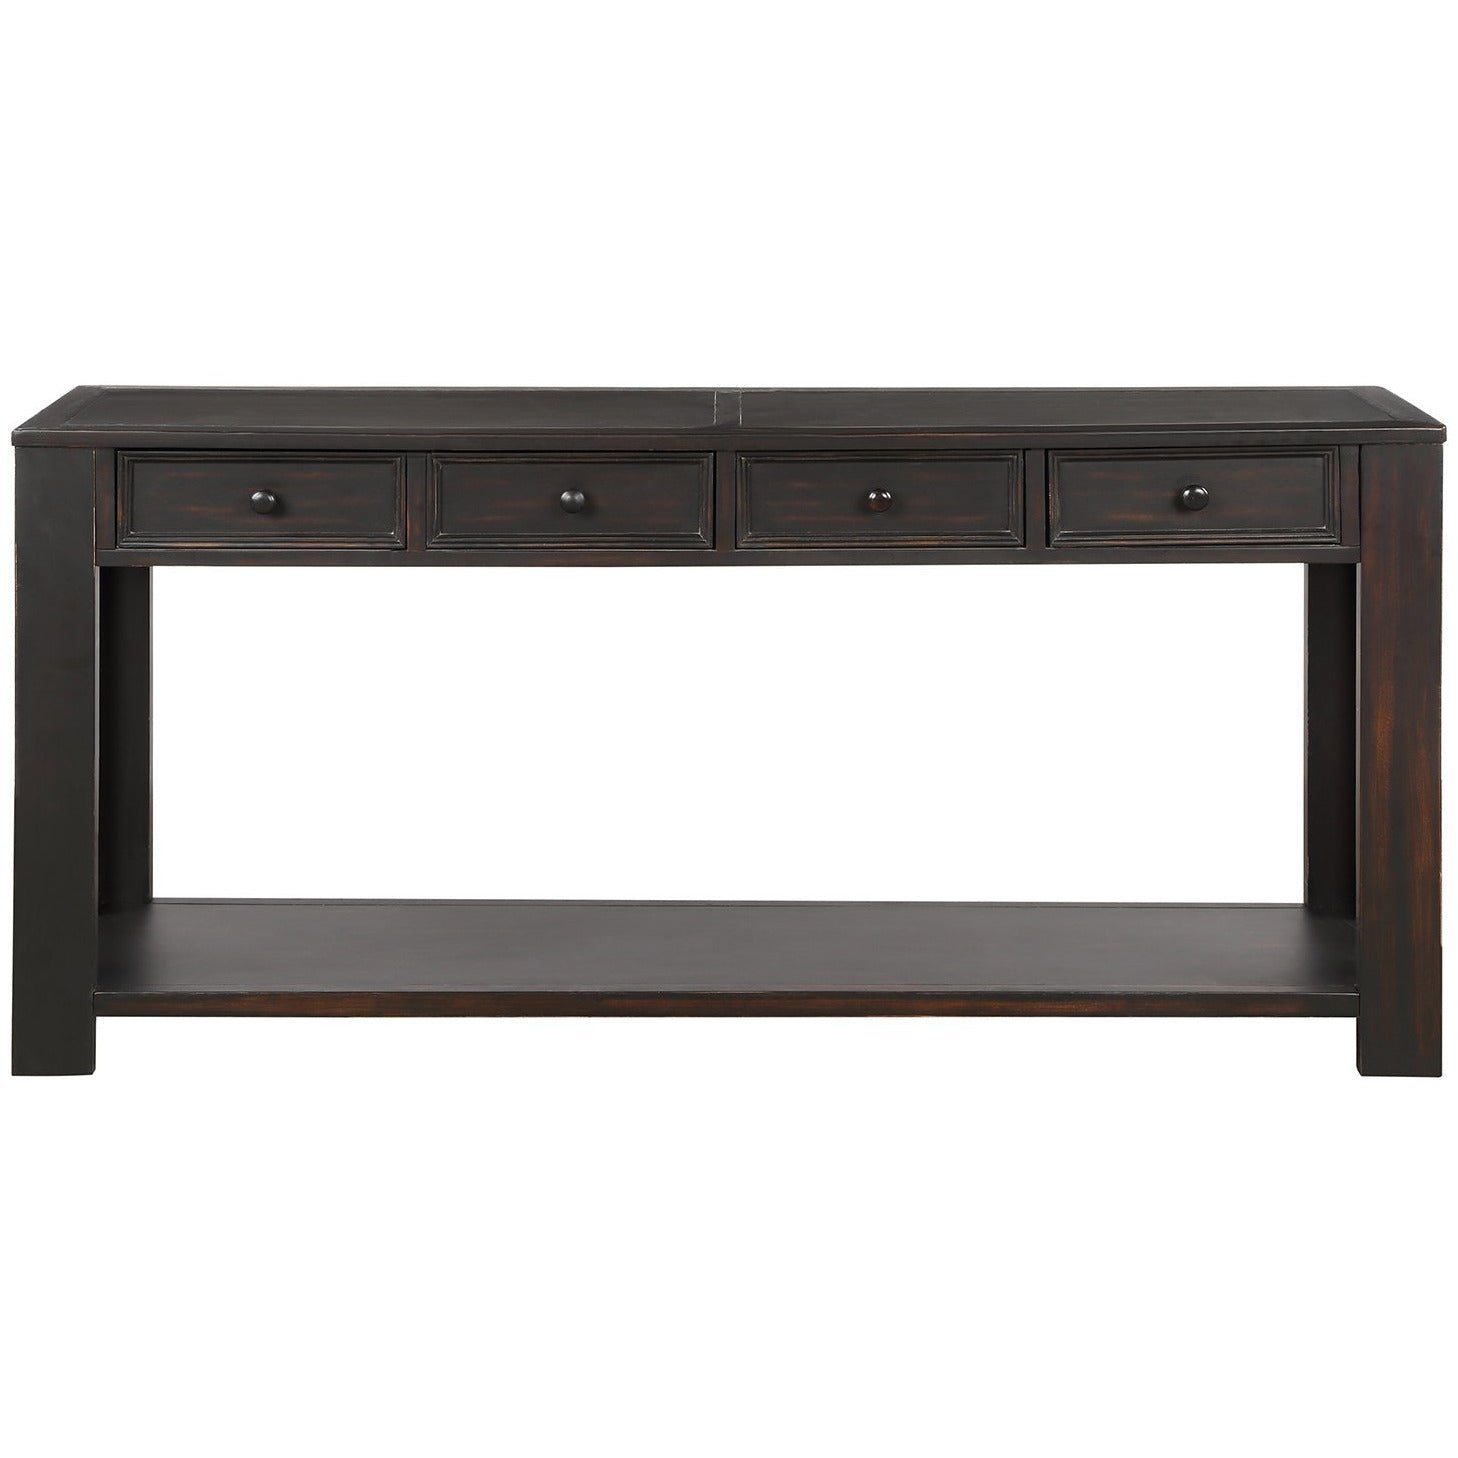 Dark Slate Gray Rectangular Console Table for Entryway Hallway Sofa Table with Storage Drawers and Bottom Shelf BH189615